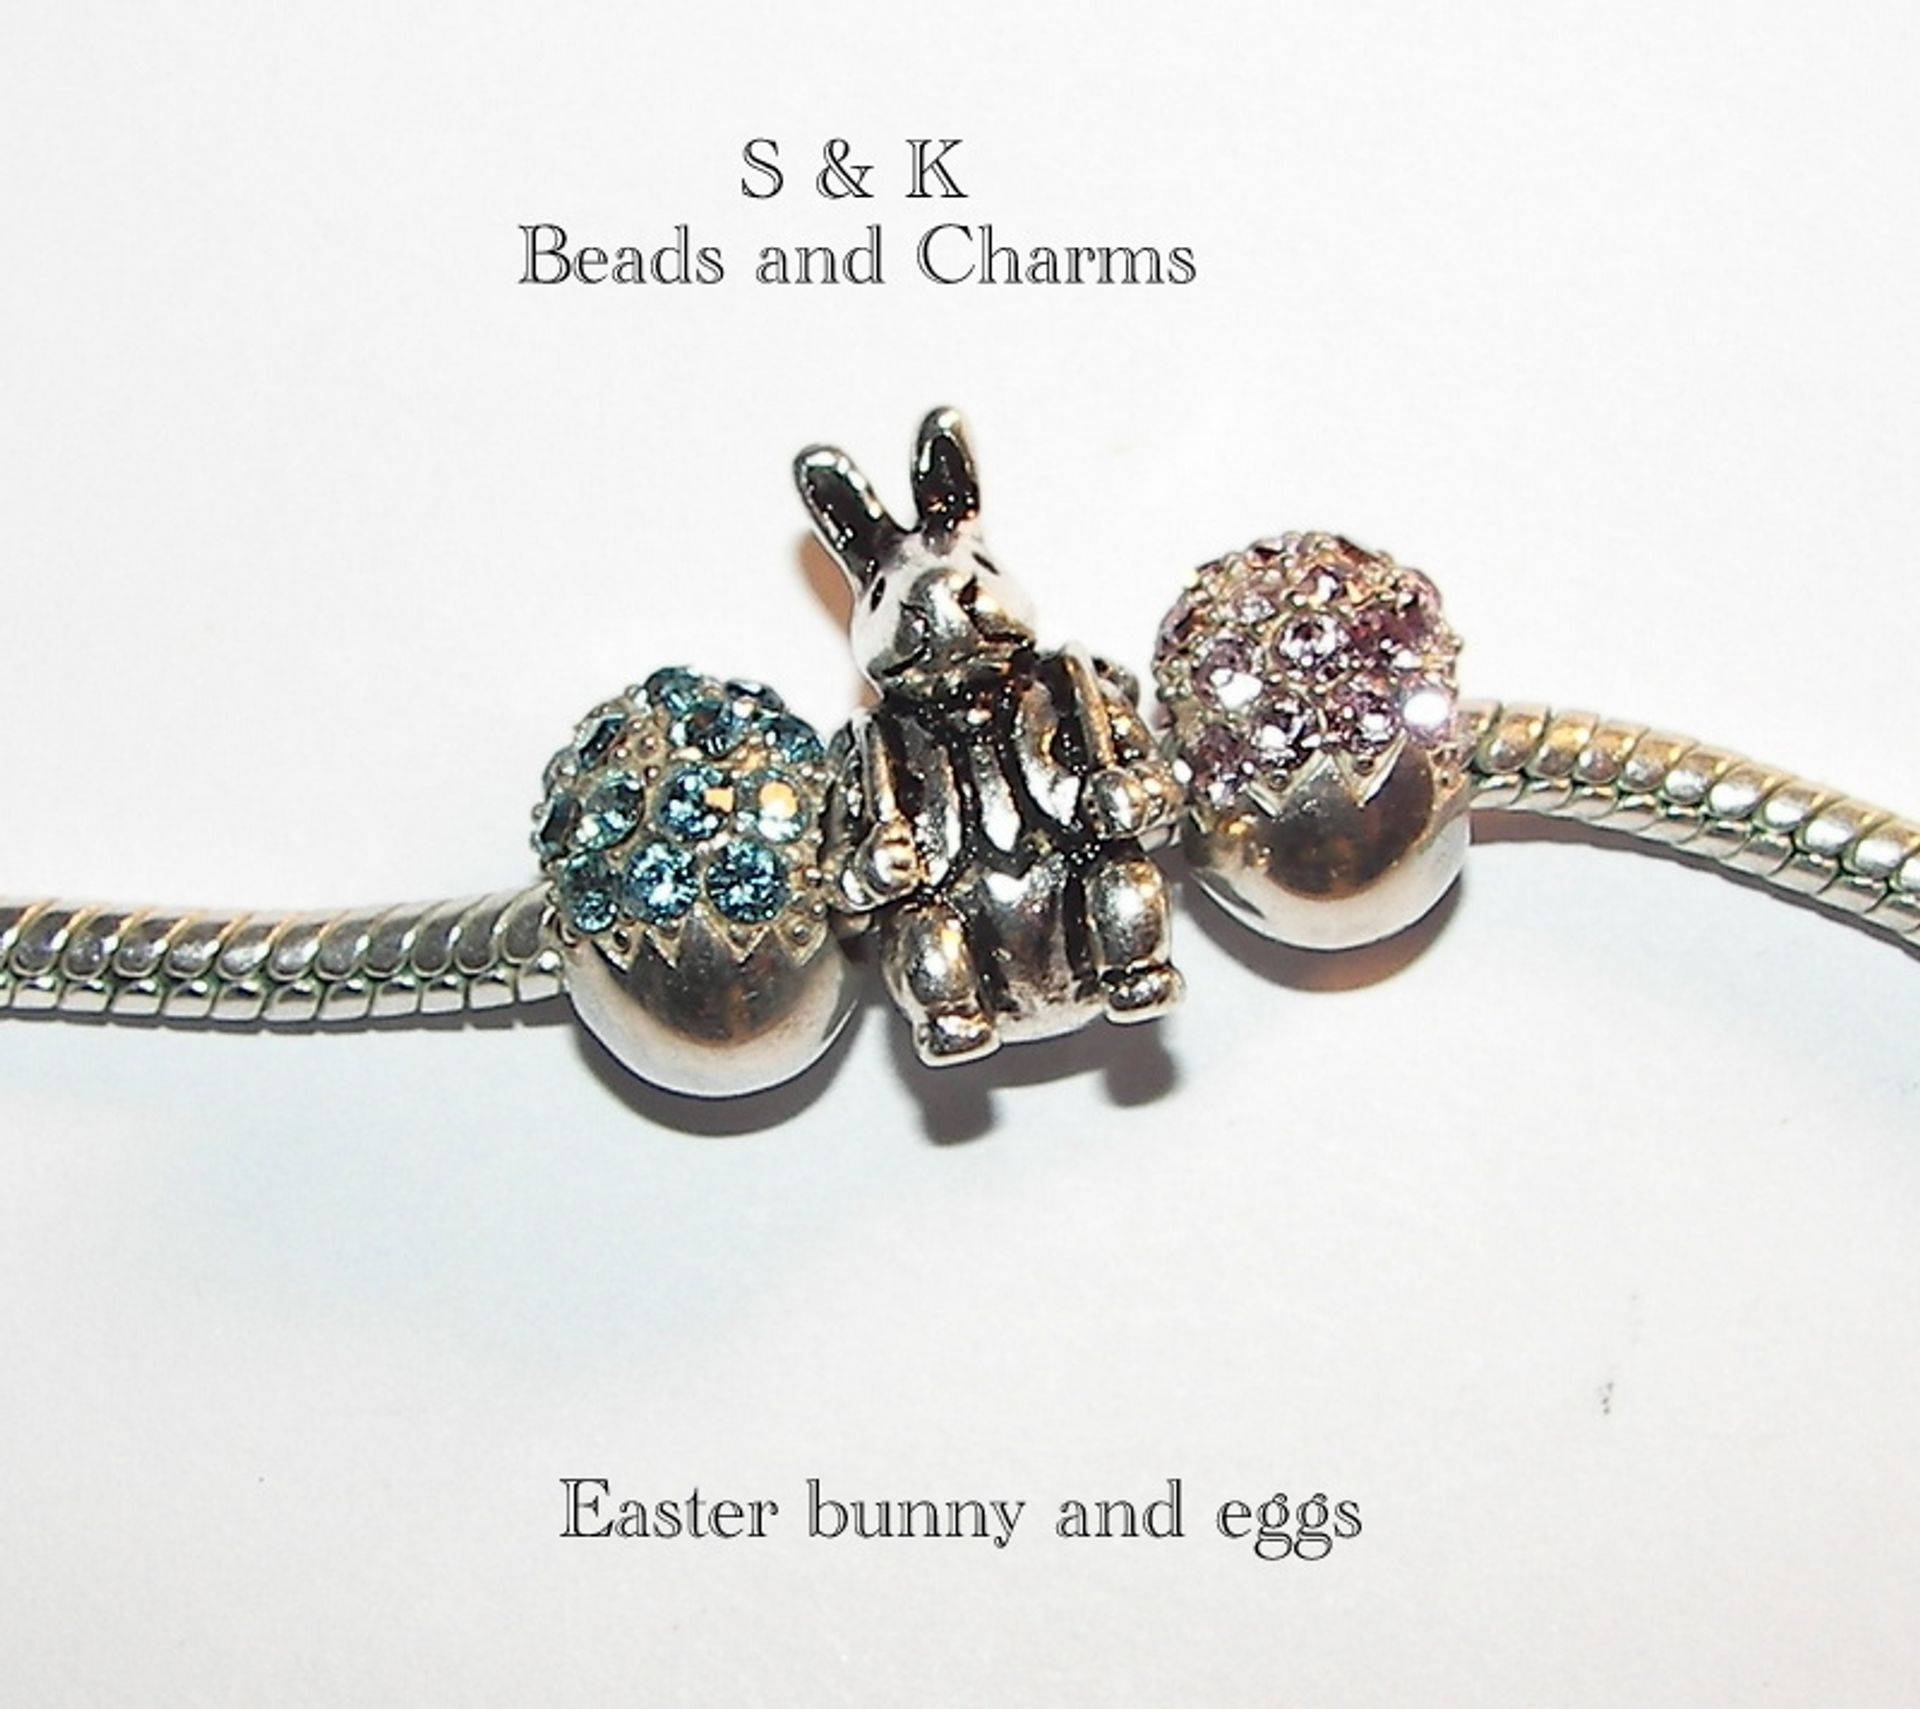 Peter rabbit charms  from S&K beads and Charms